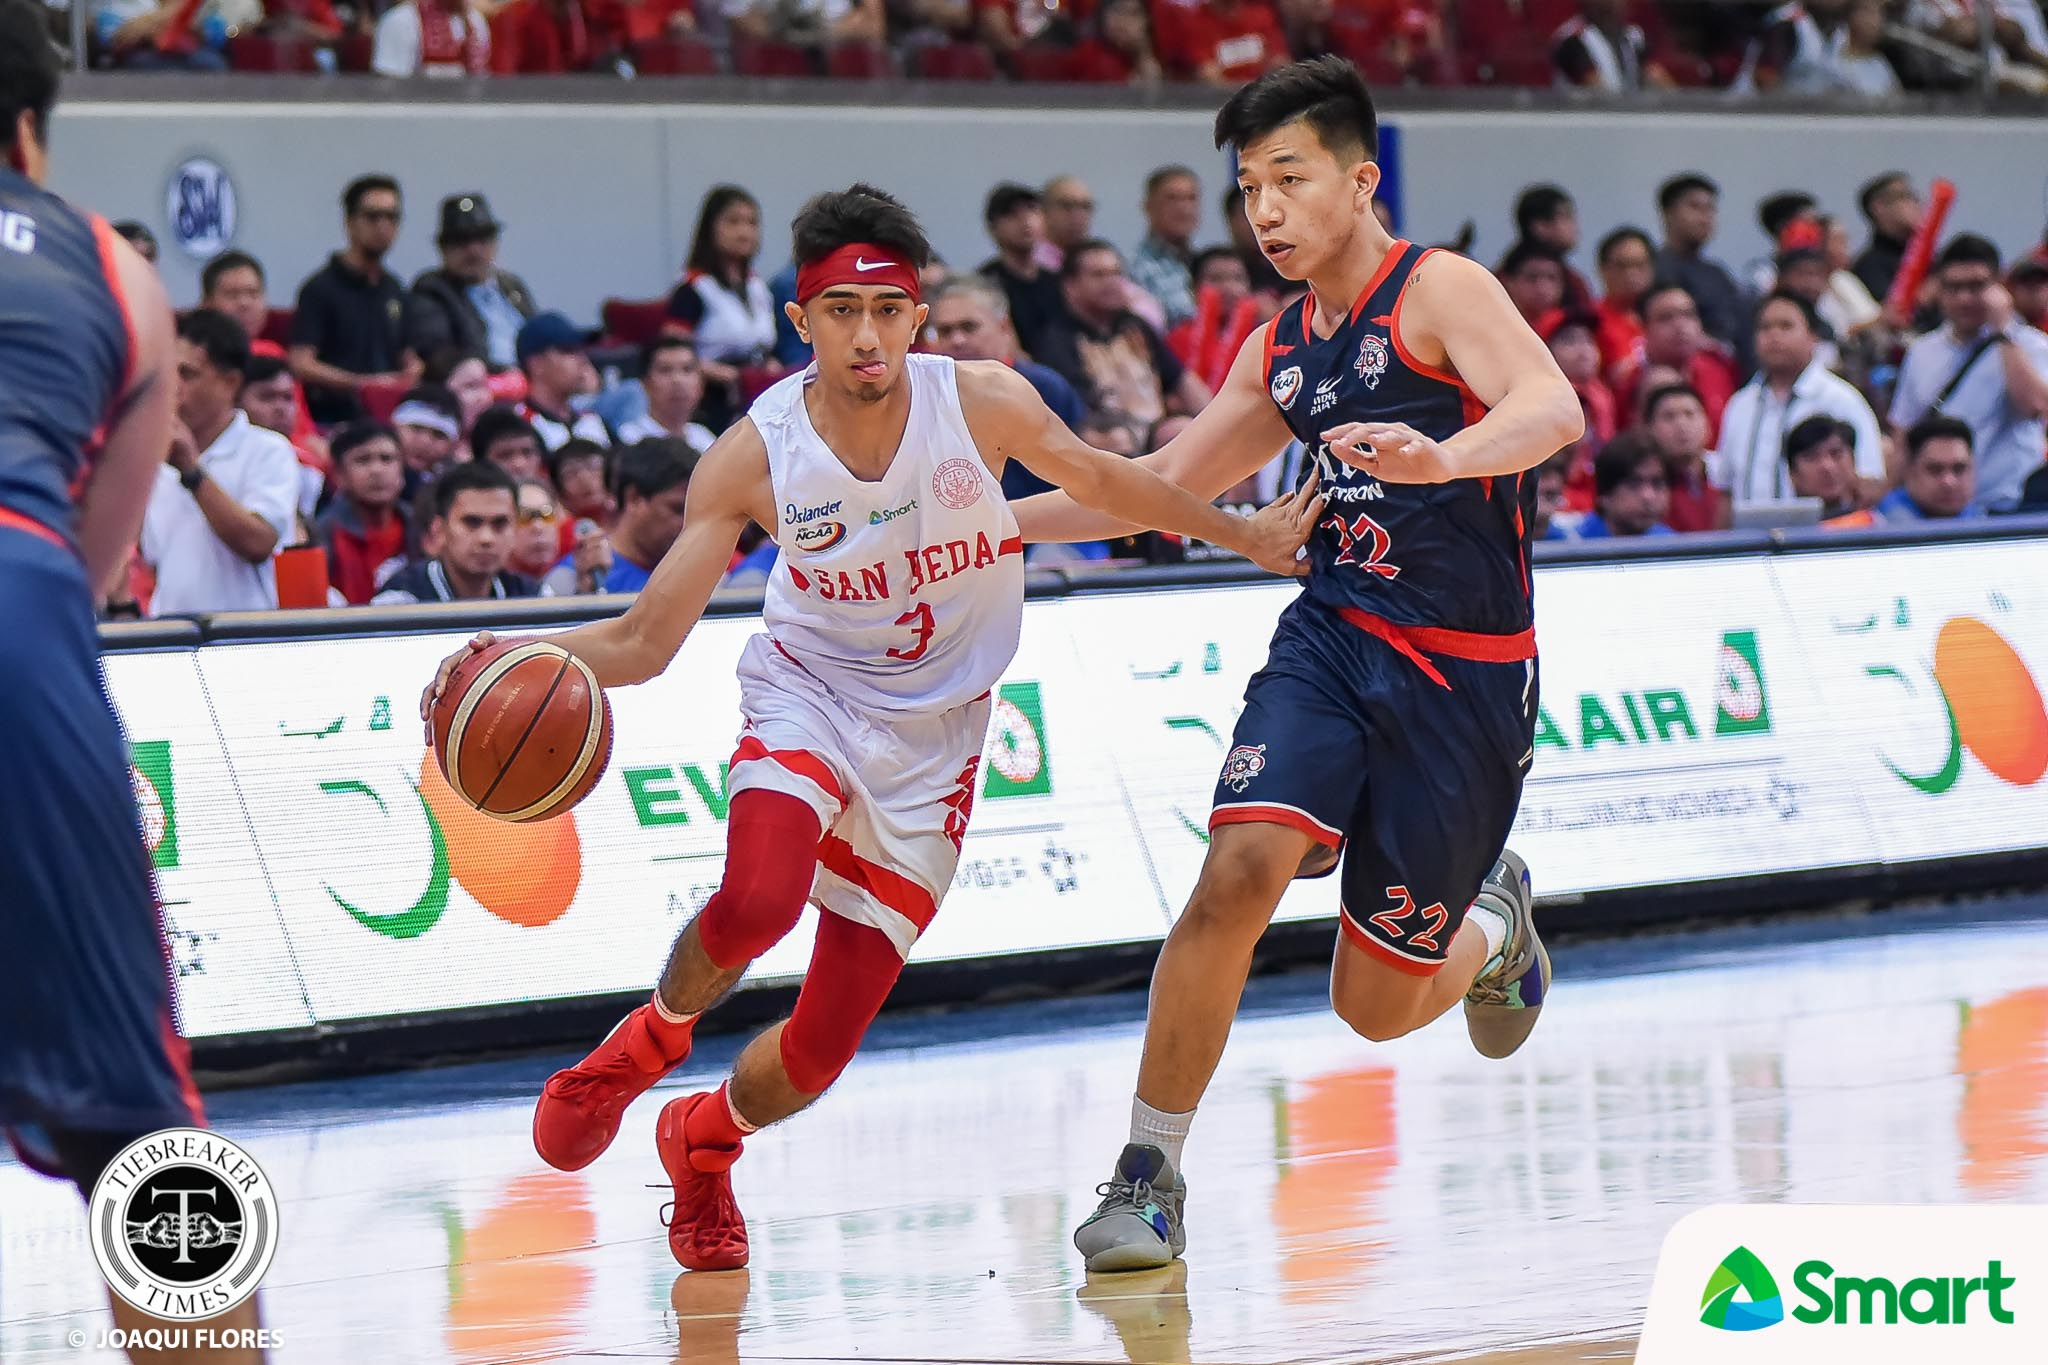 NCAA-95-SBU-vs.-CSJL-Nelle-1354 Fast and Furious tandem with Mark Nonoy excites Evan Nelle Basketball DLSU News UAAP  - philippine sports news